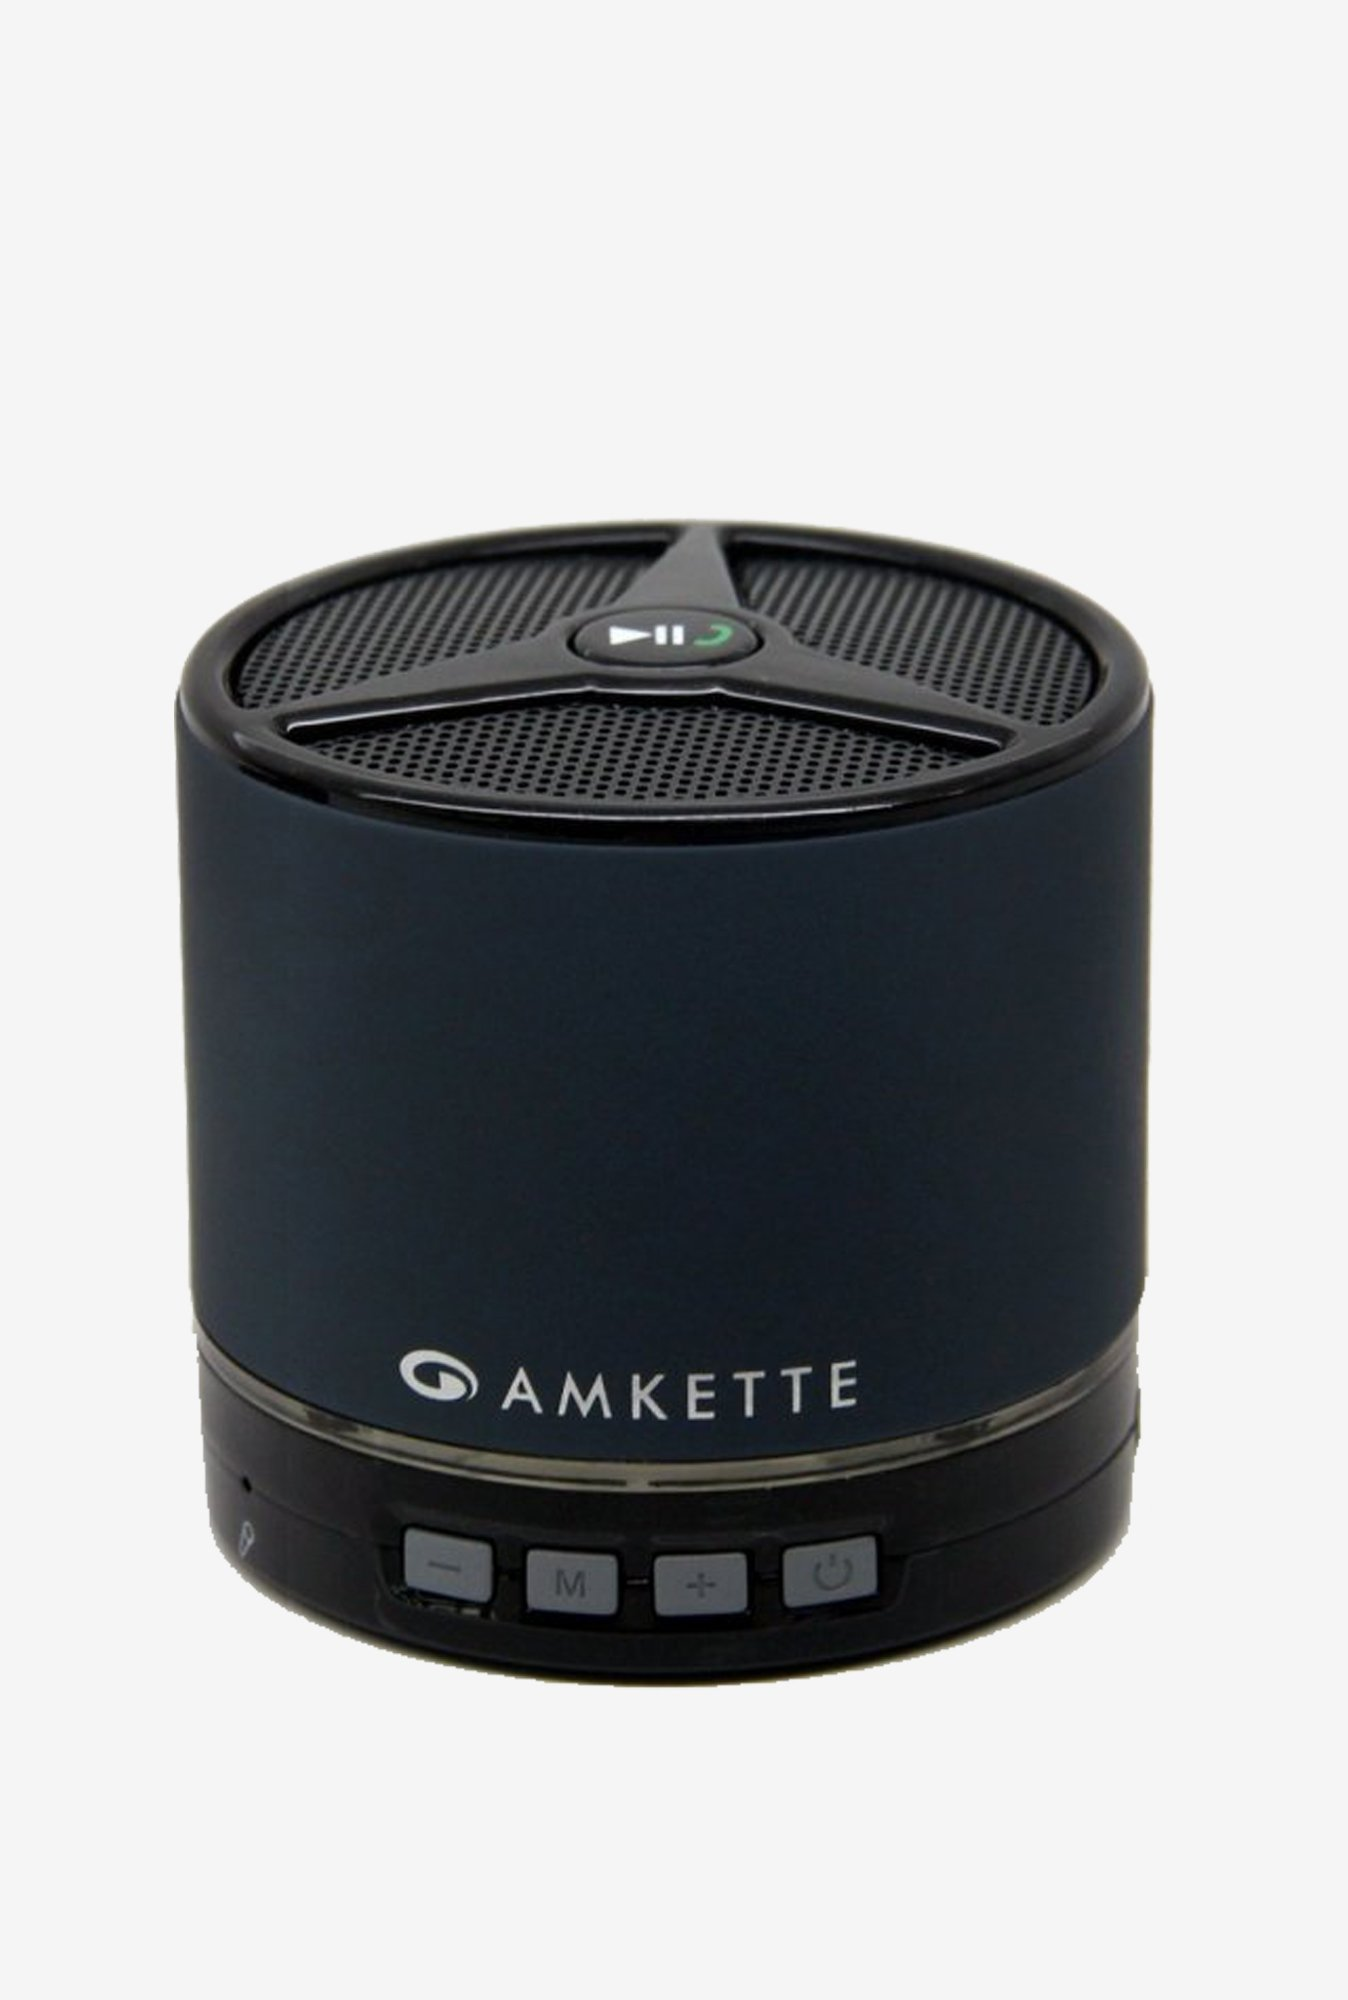 Amkette FDD663GR Trubeats Portable Bluetooth Speaker (Grey)